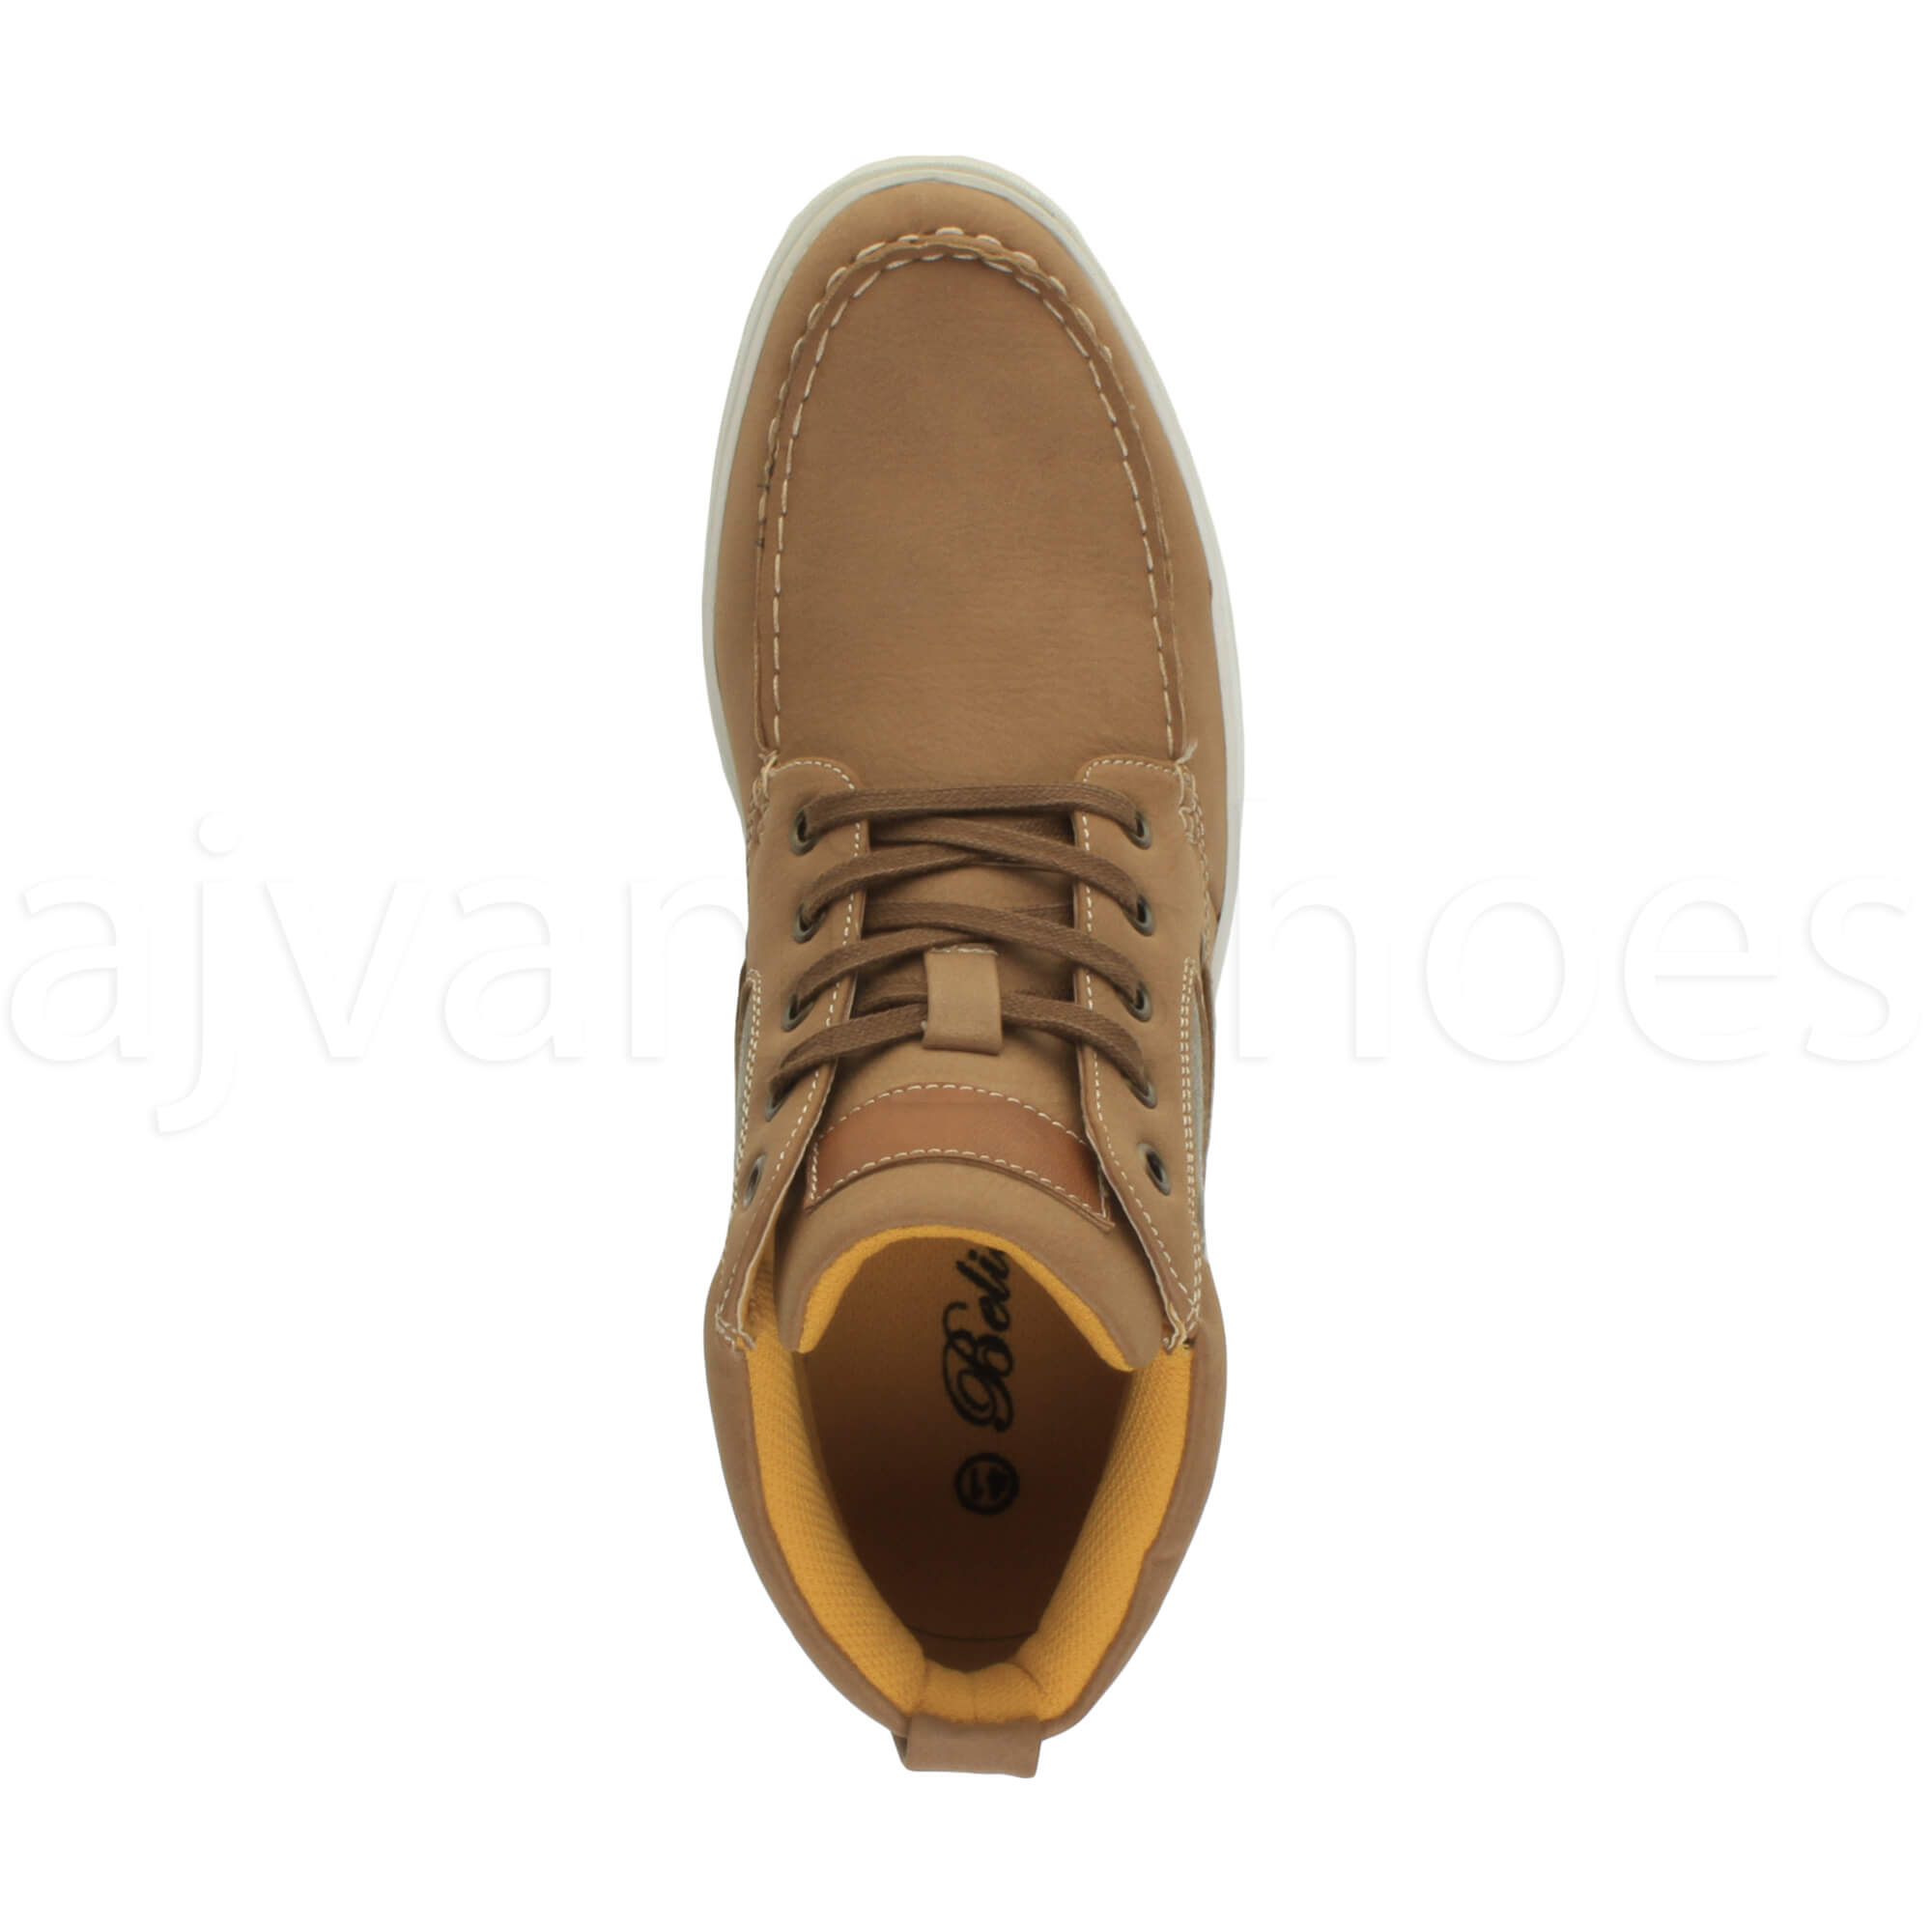 MENS-FLAT-LACE-UP-CASUAL-BOAT-CONTRAST-HI-TOP-TRAINERS-ANKLE-BOOTS-PUMPS-SIZE thumbnail 14